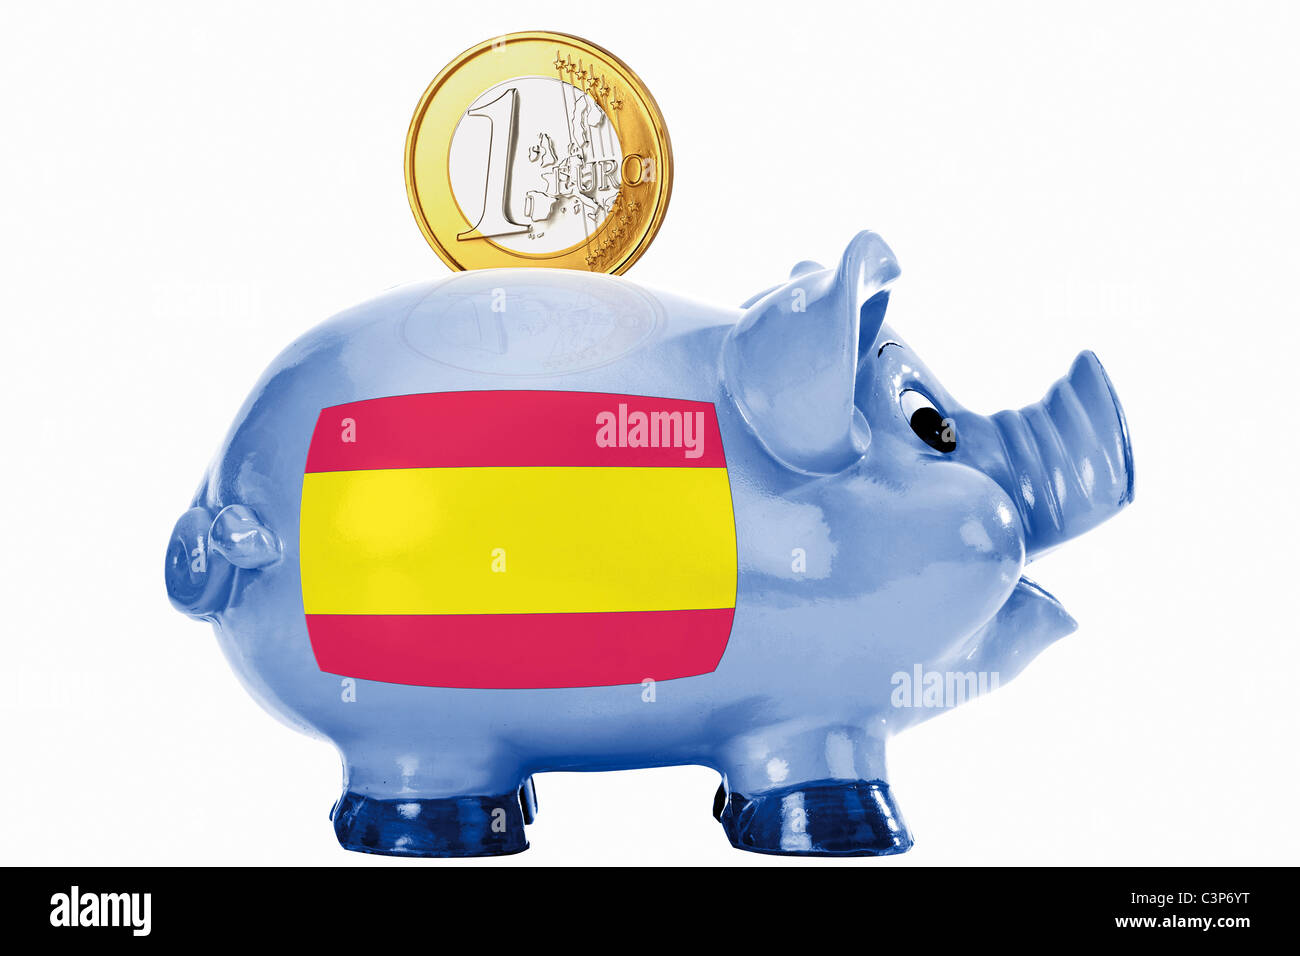 Piggy bank with 1 euro coin and spanish flag - Stock Image